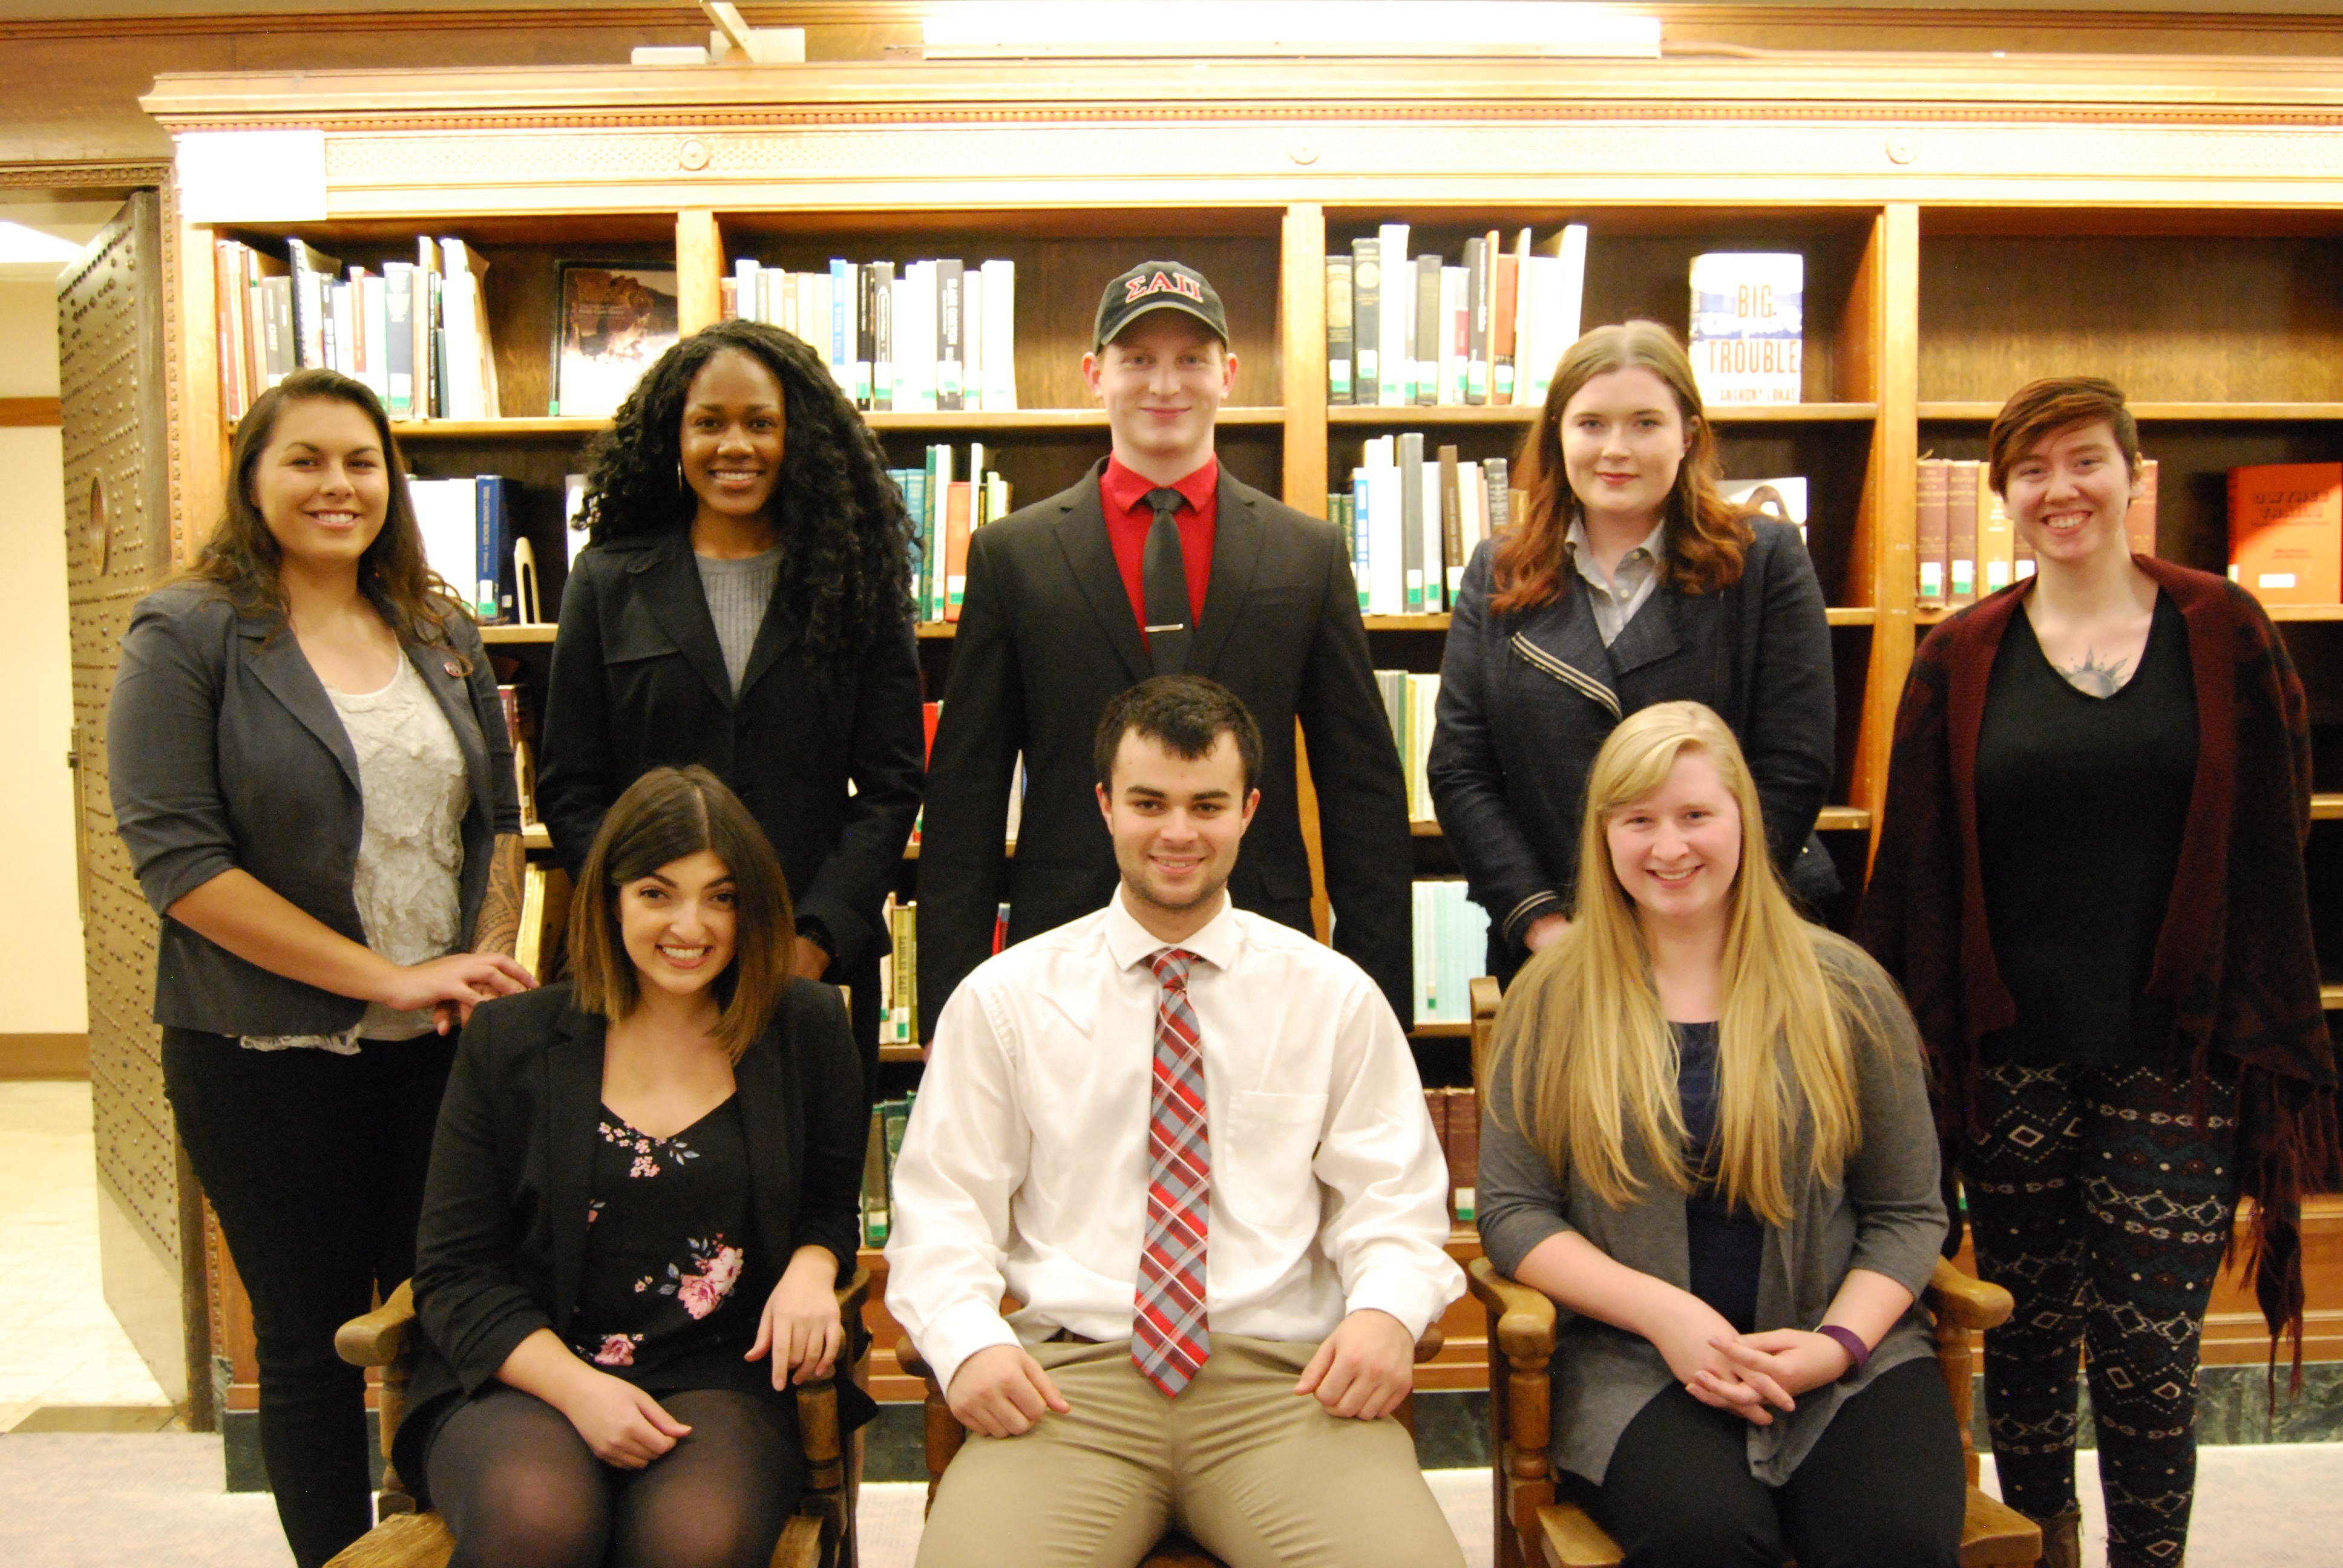 WWU Student Leaders image